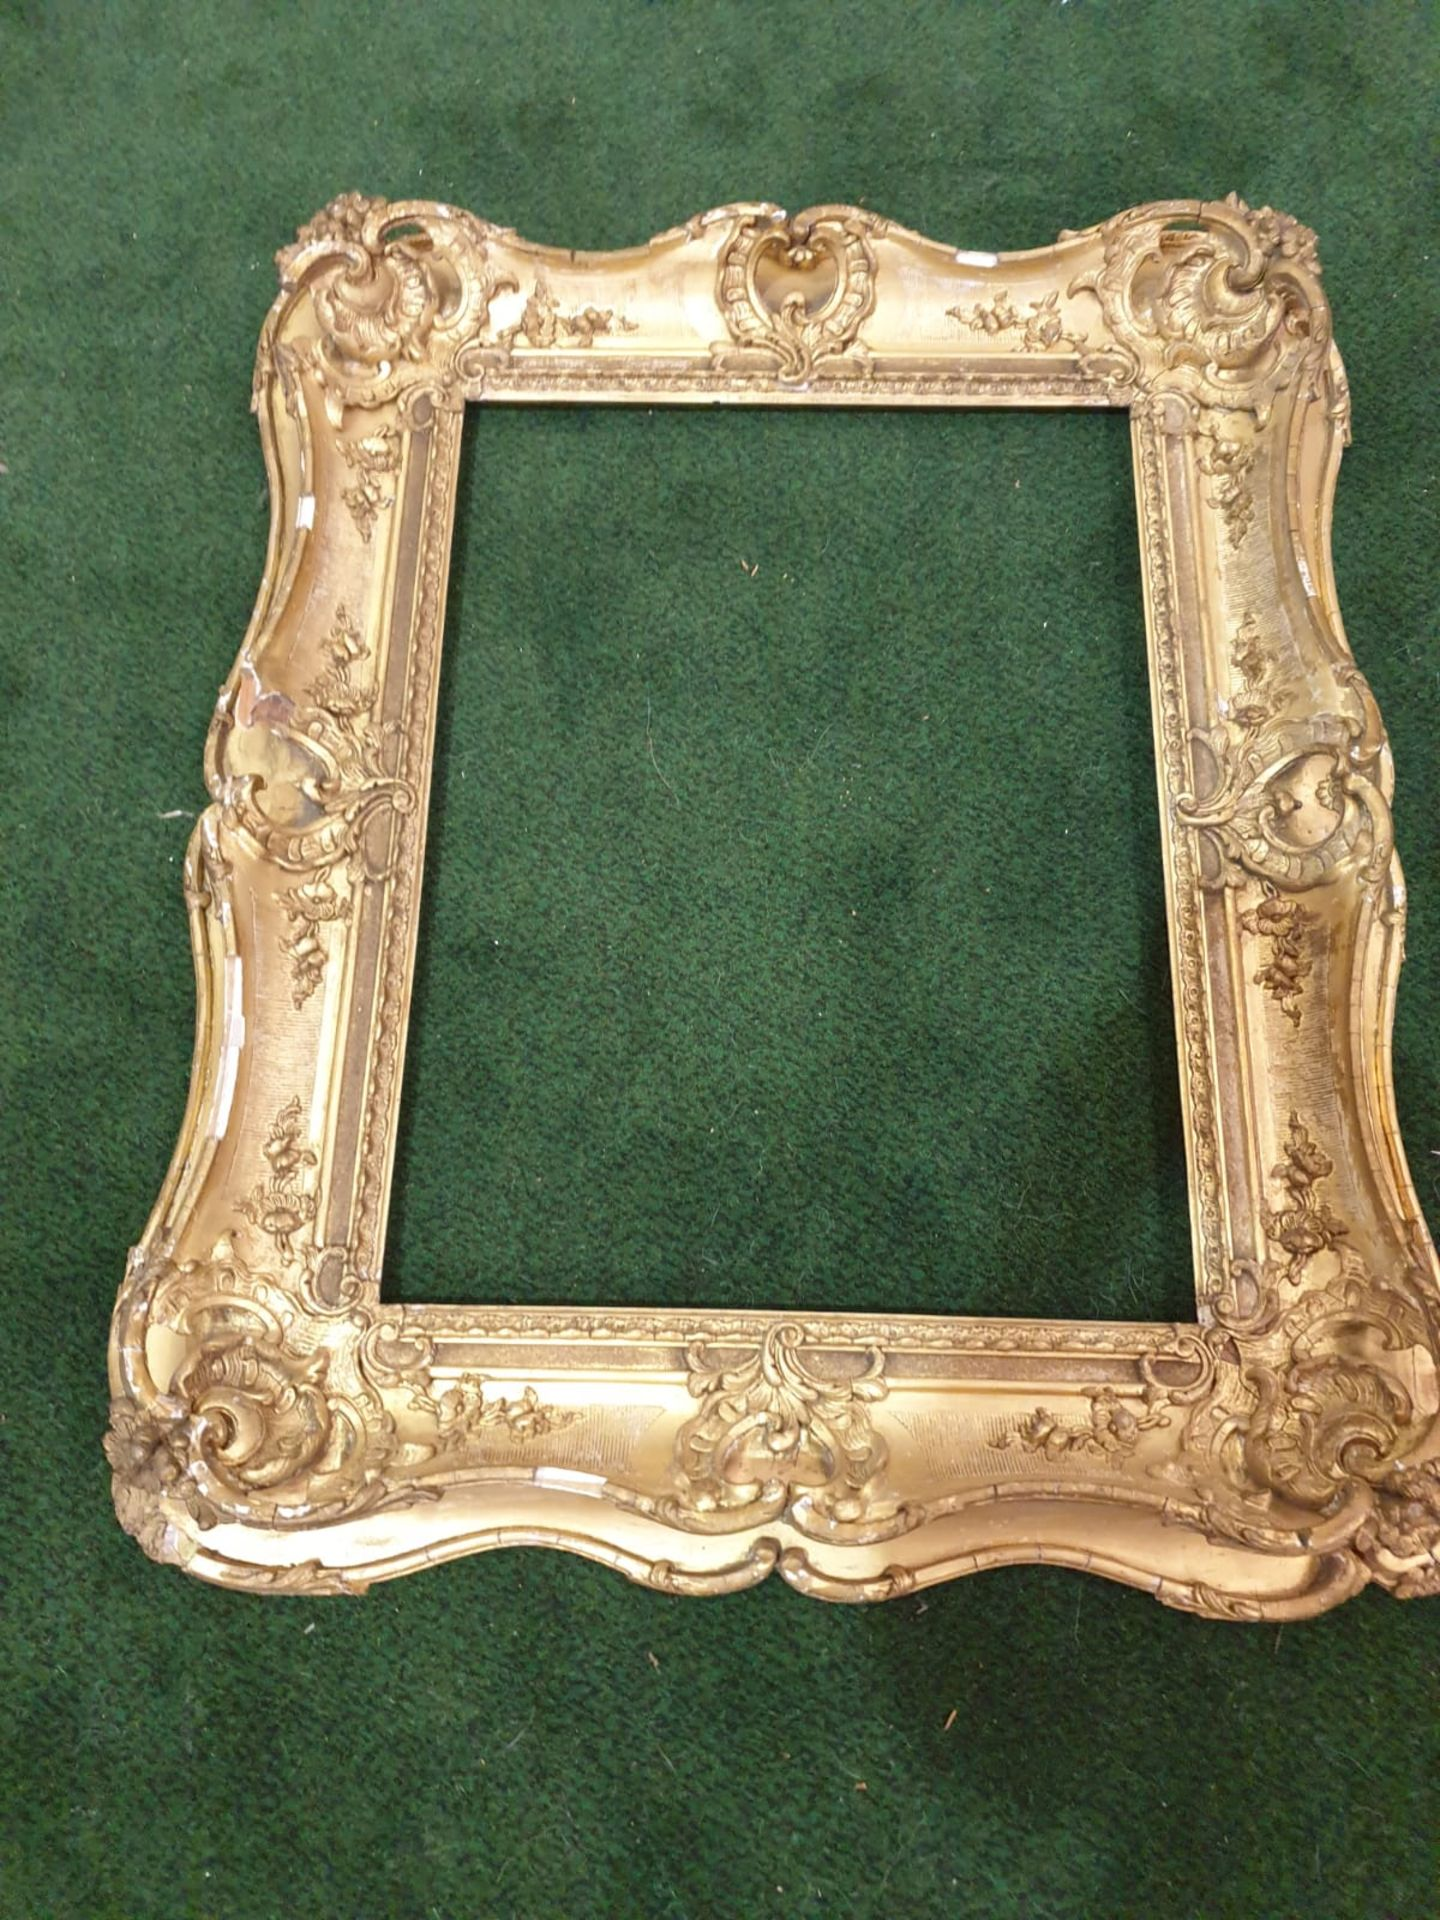 Gesso picture frame 89 x 75cm - Image 2 of 3